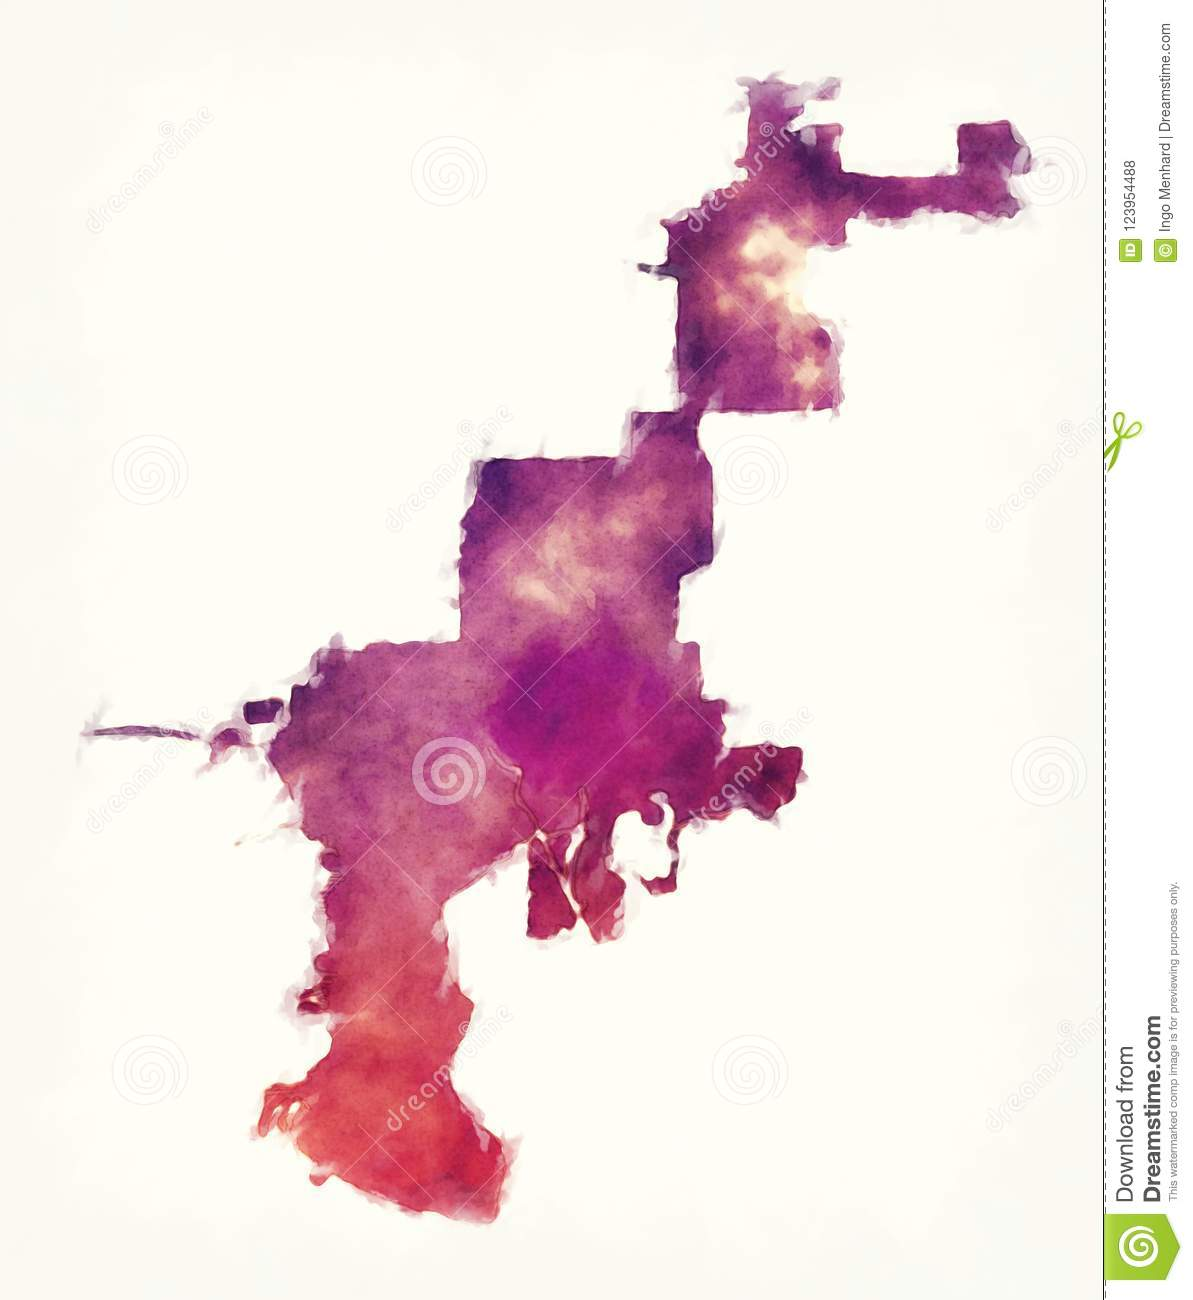 Tampa Florida City Watercolor Map In Front Of A White Background